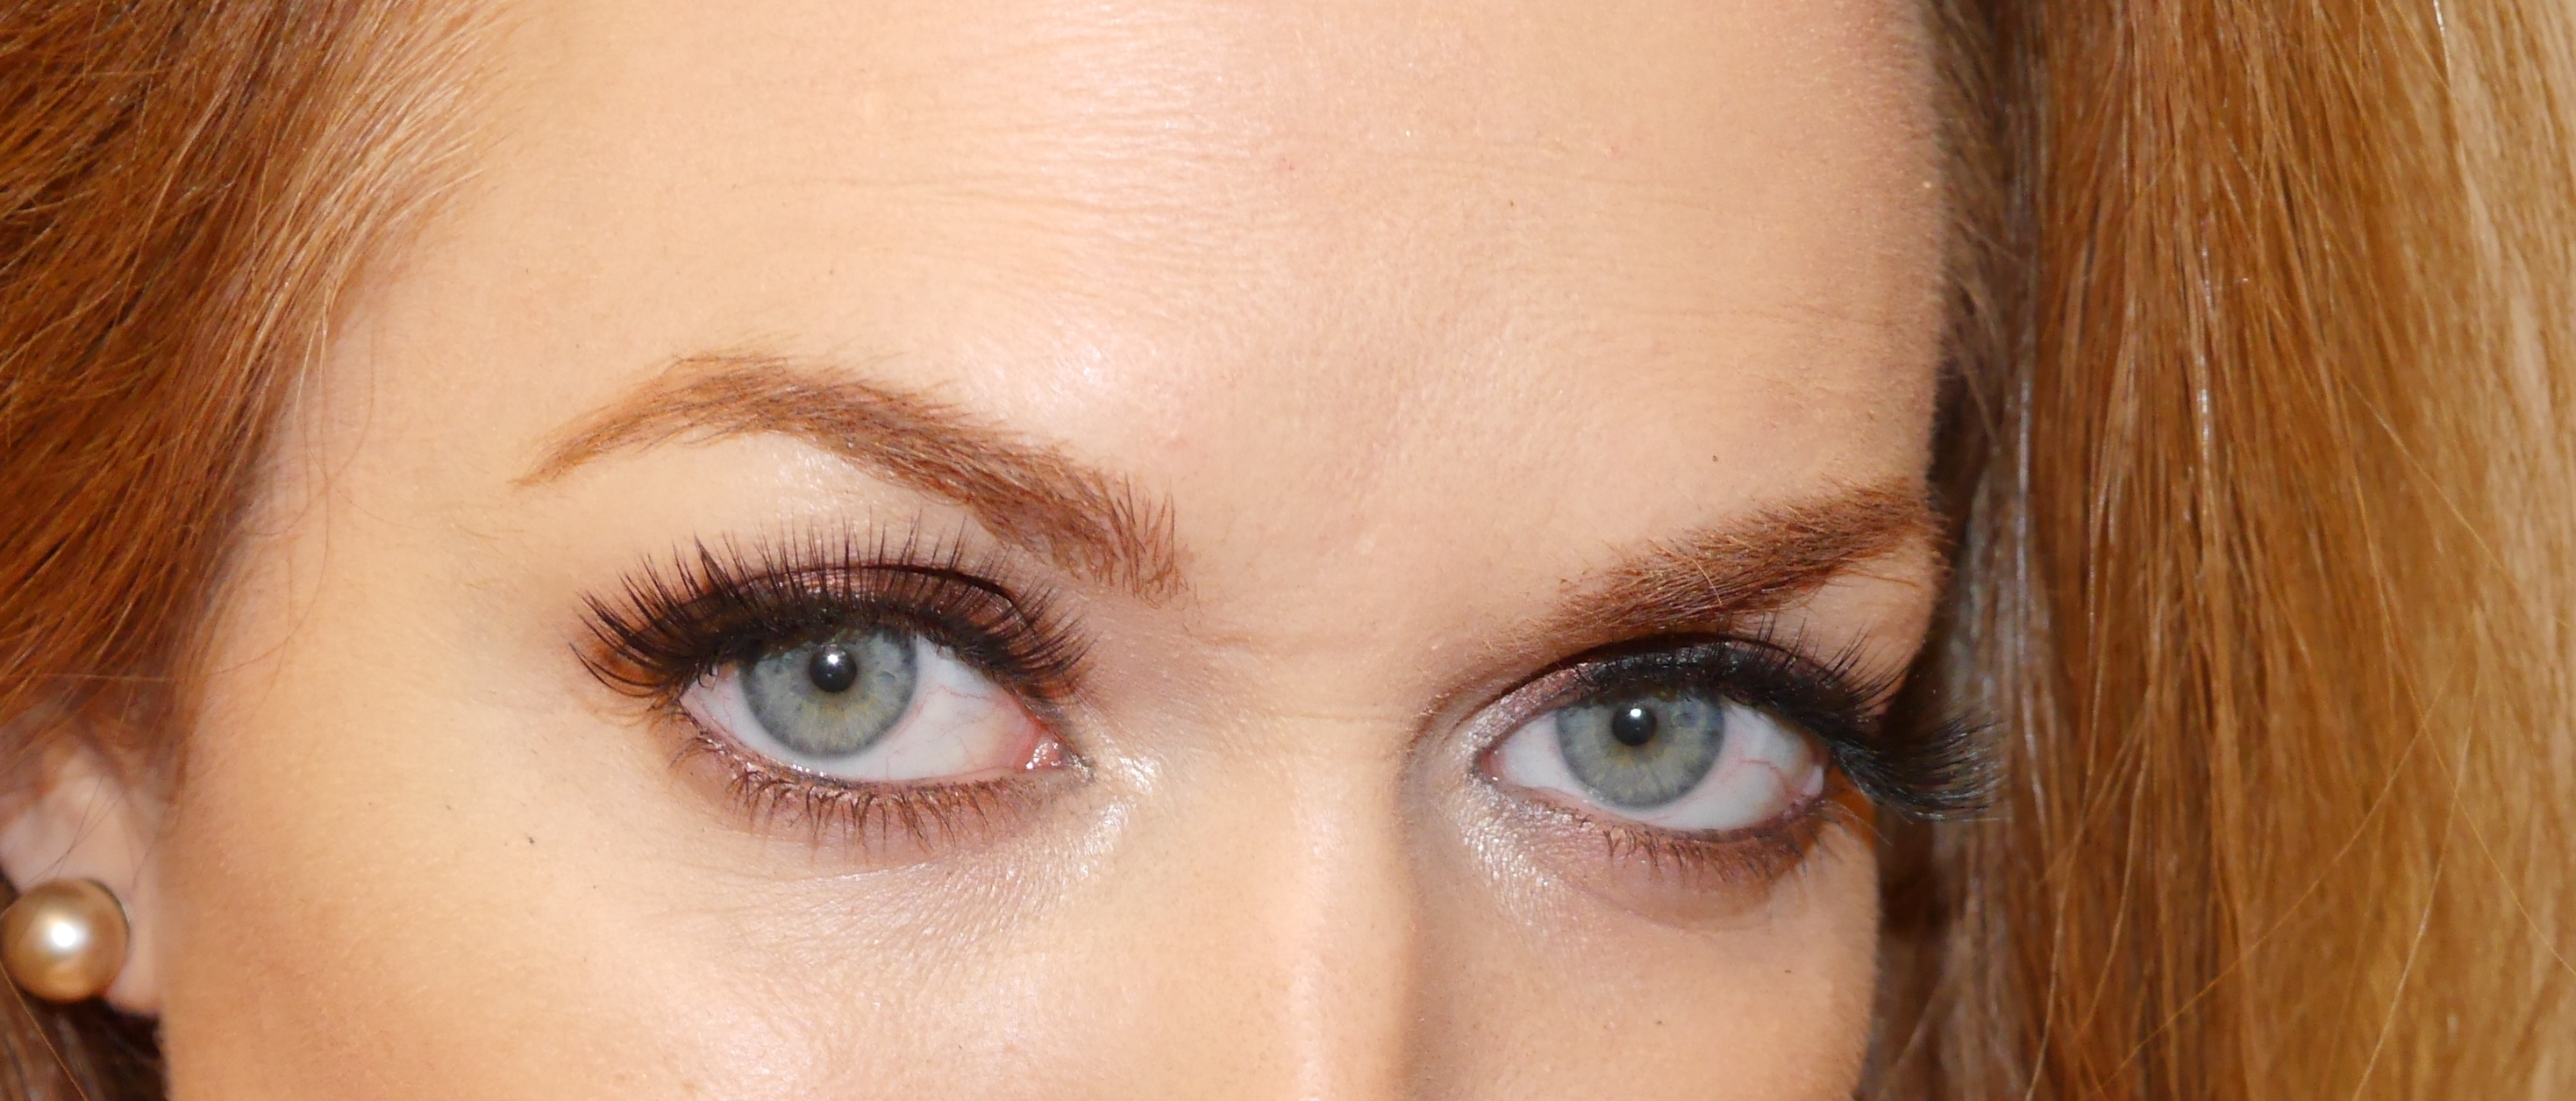 how to make eyelashes stay curled